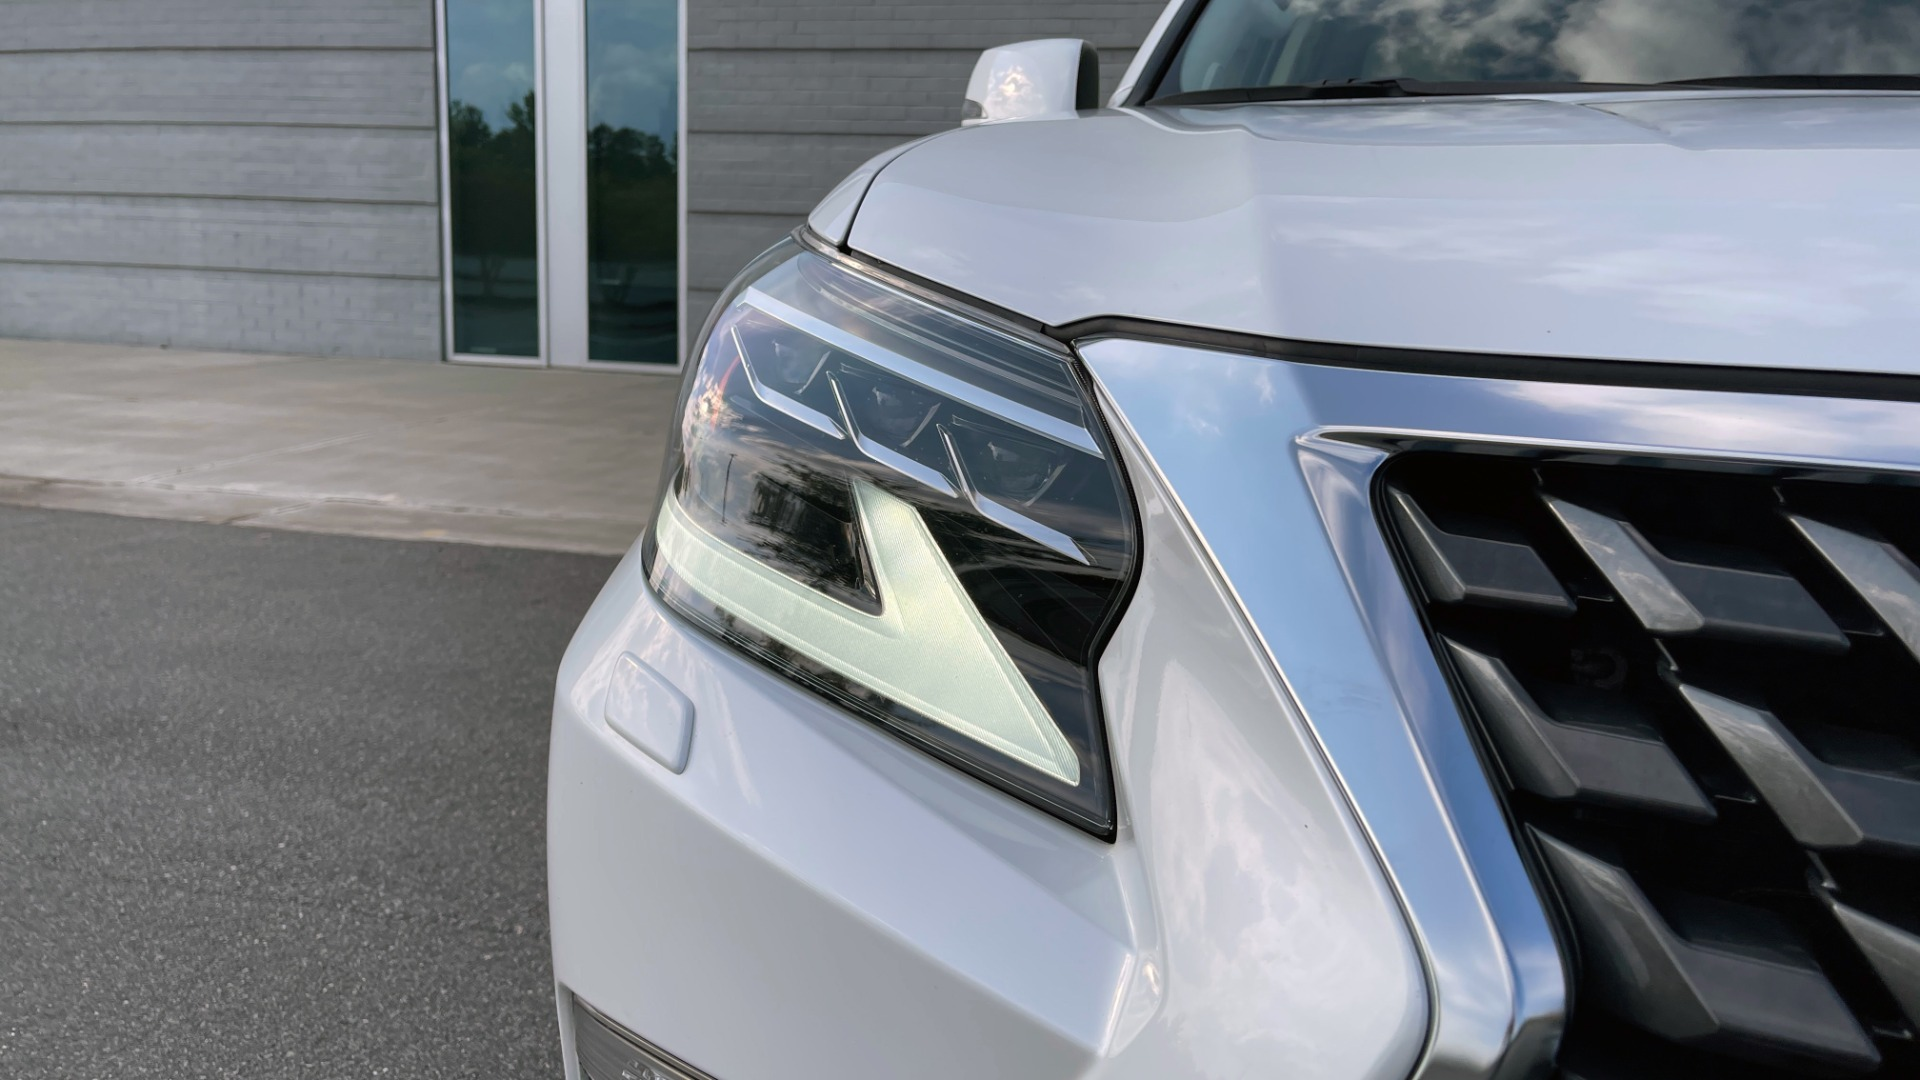 Used 2020 Lexus GX 460 PREMIUM / AWD / NAV / SUNROOF / 3-ROW / REARVIEW for sale $54,495 at Formula Imports in Charlotte NC 28227 10